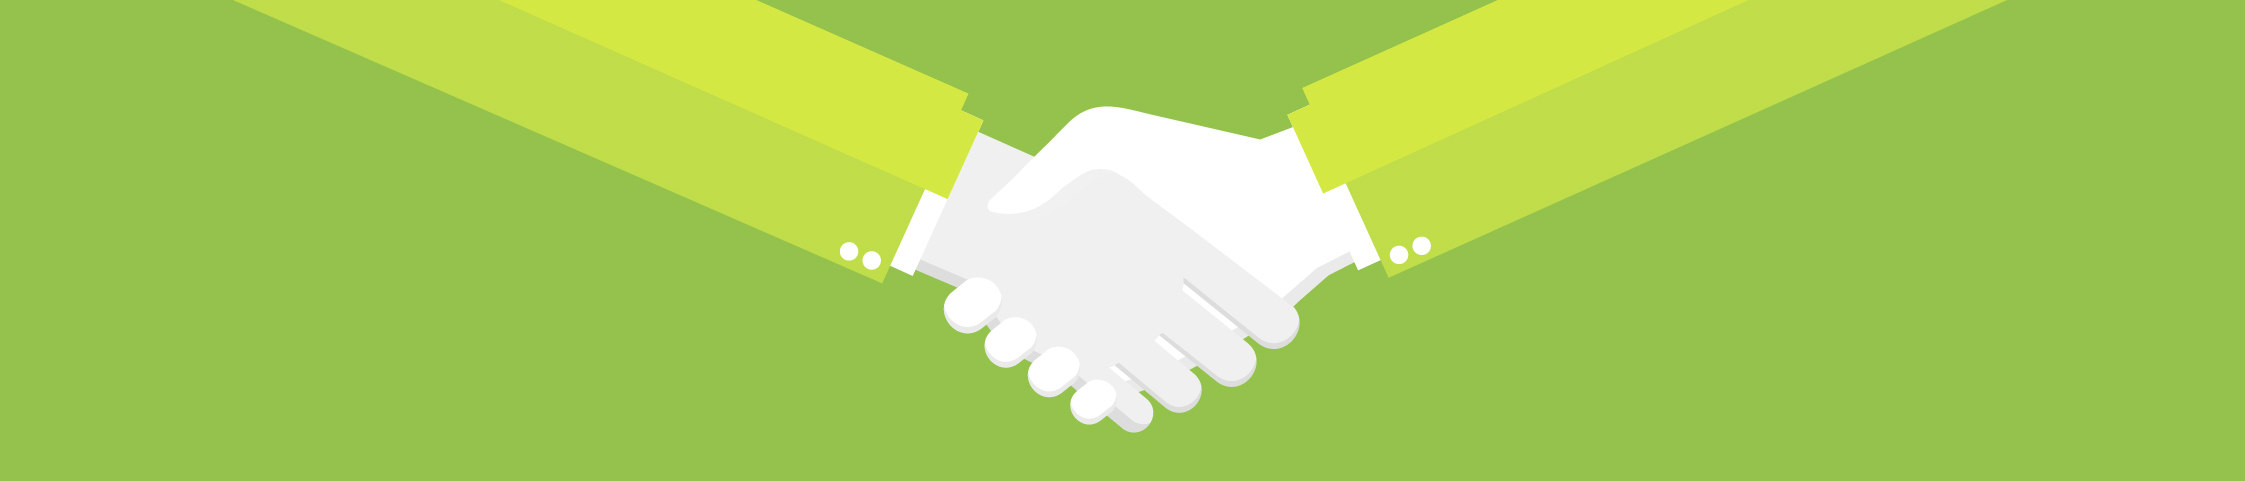 Handshake implying collaboration between brand teams